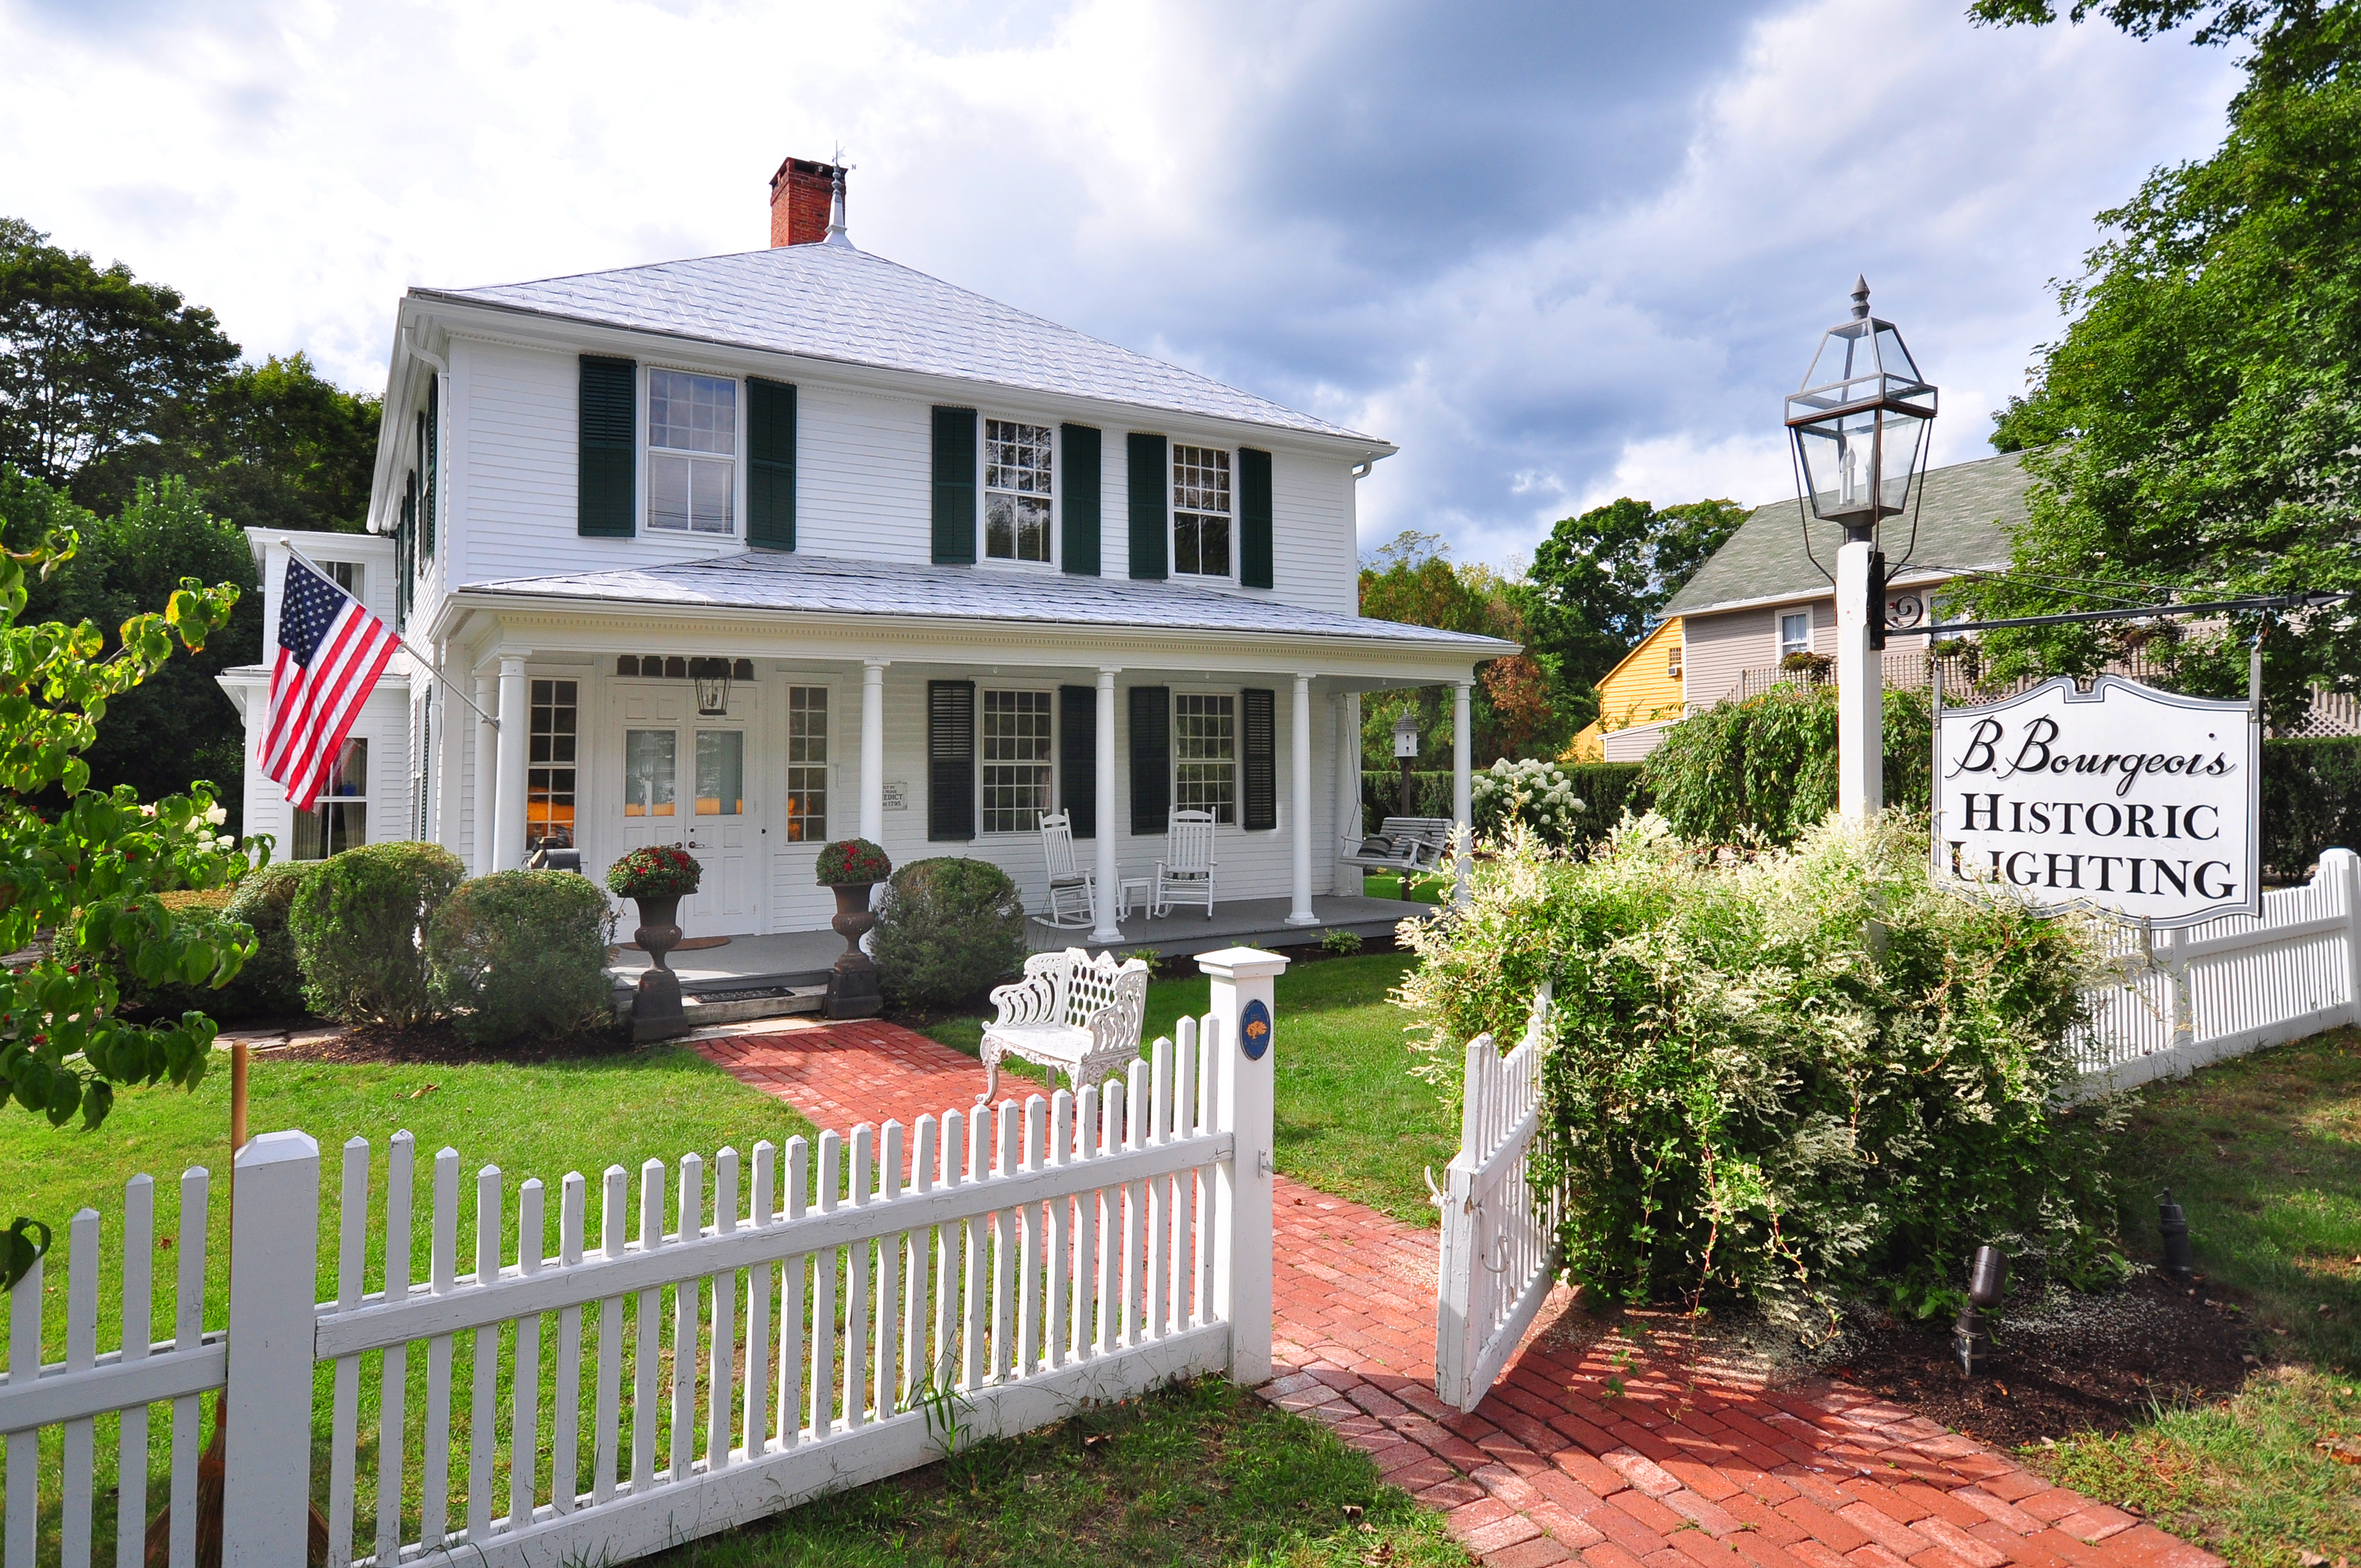 Single Family Home for Sale at The Noah Benedict House 270 Main St South Woodbury, Connecticut 06798 United States